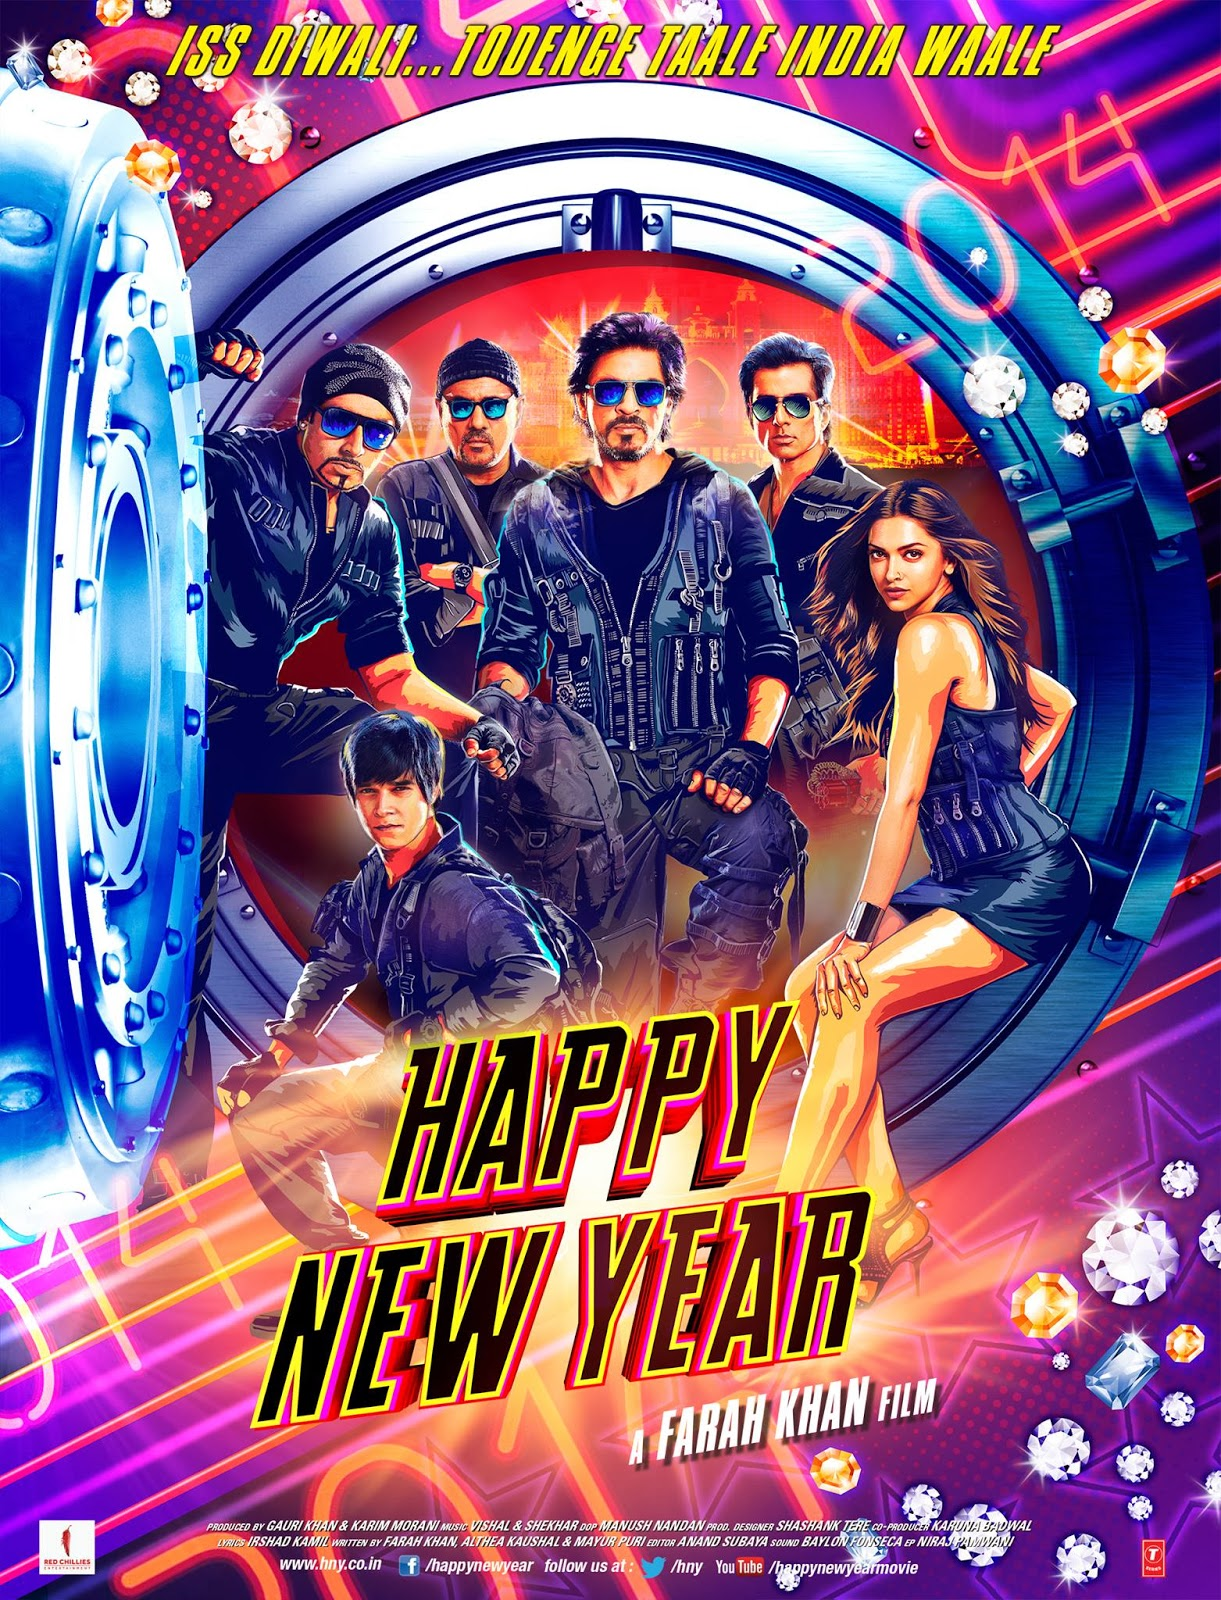 Happy New Year (2014) Poster